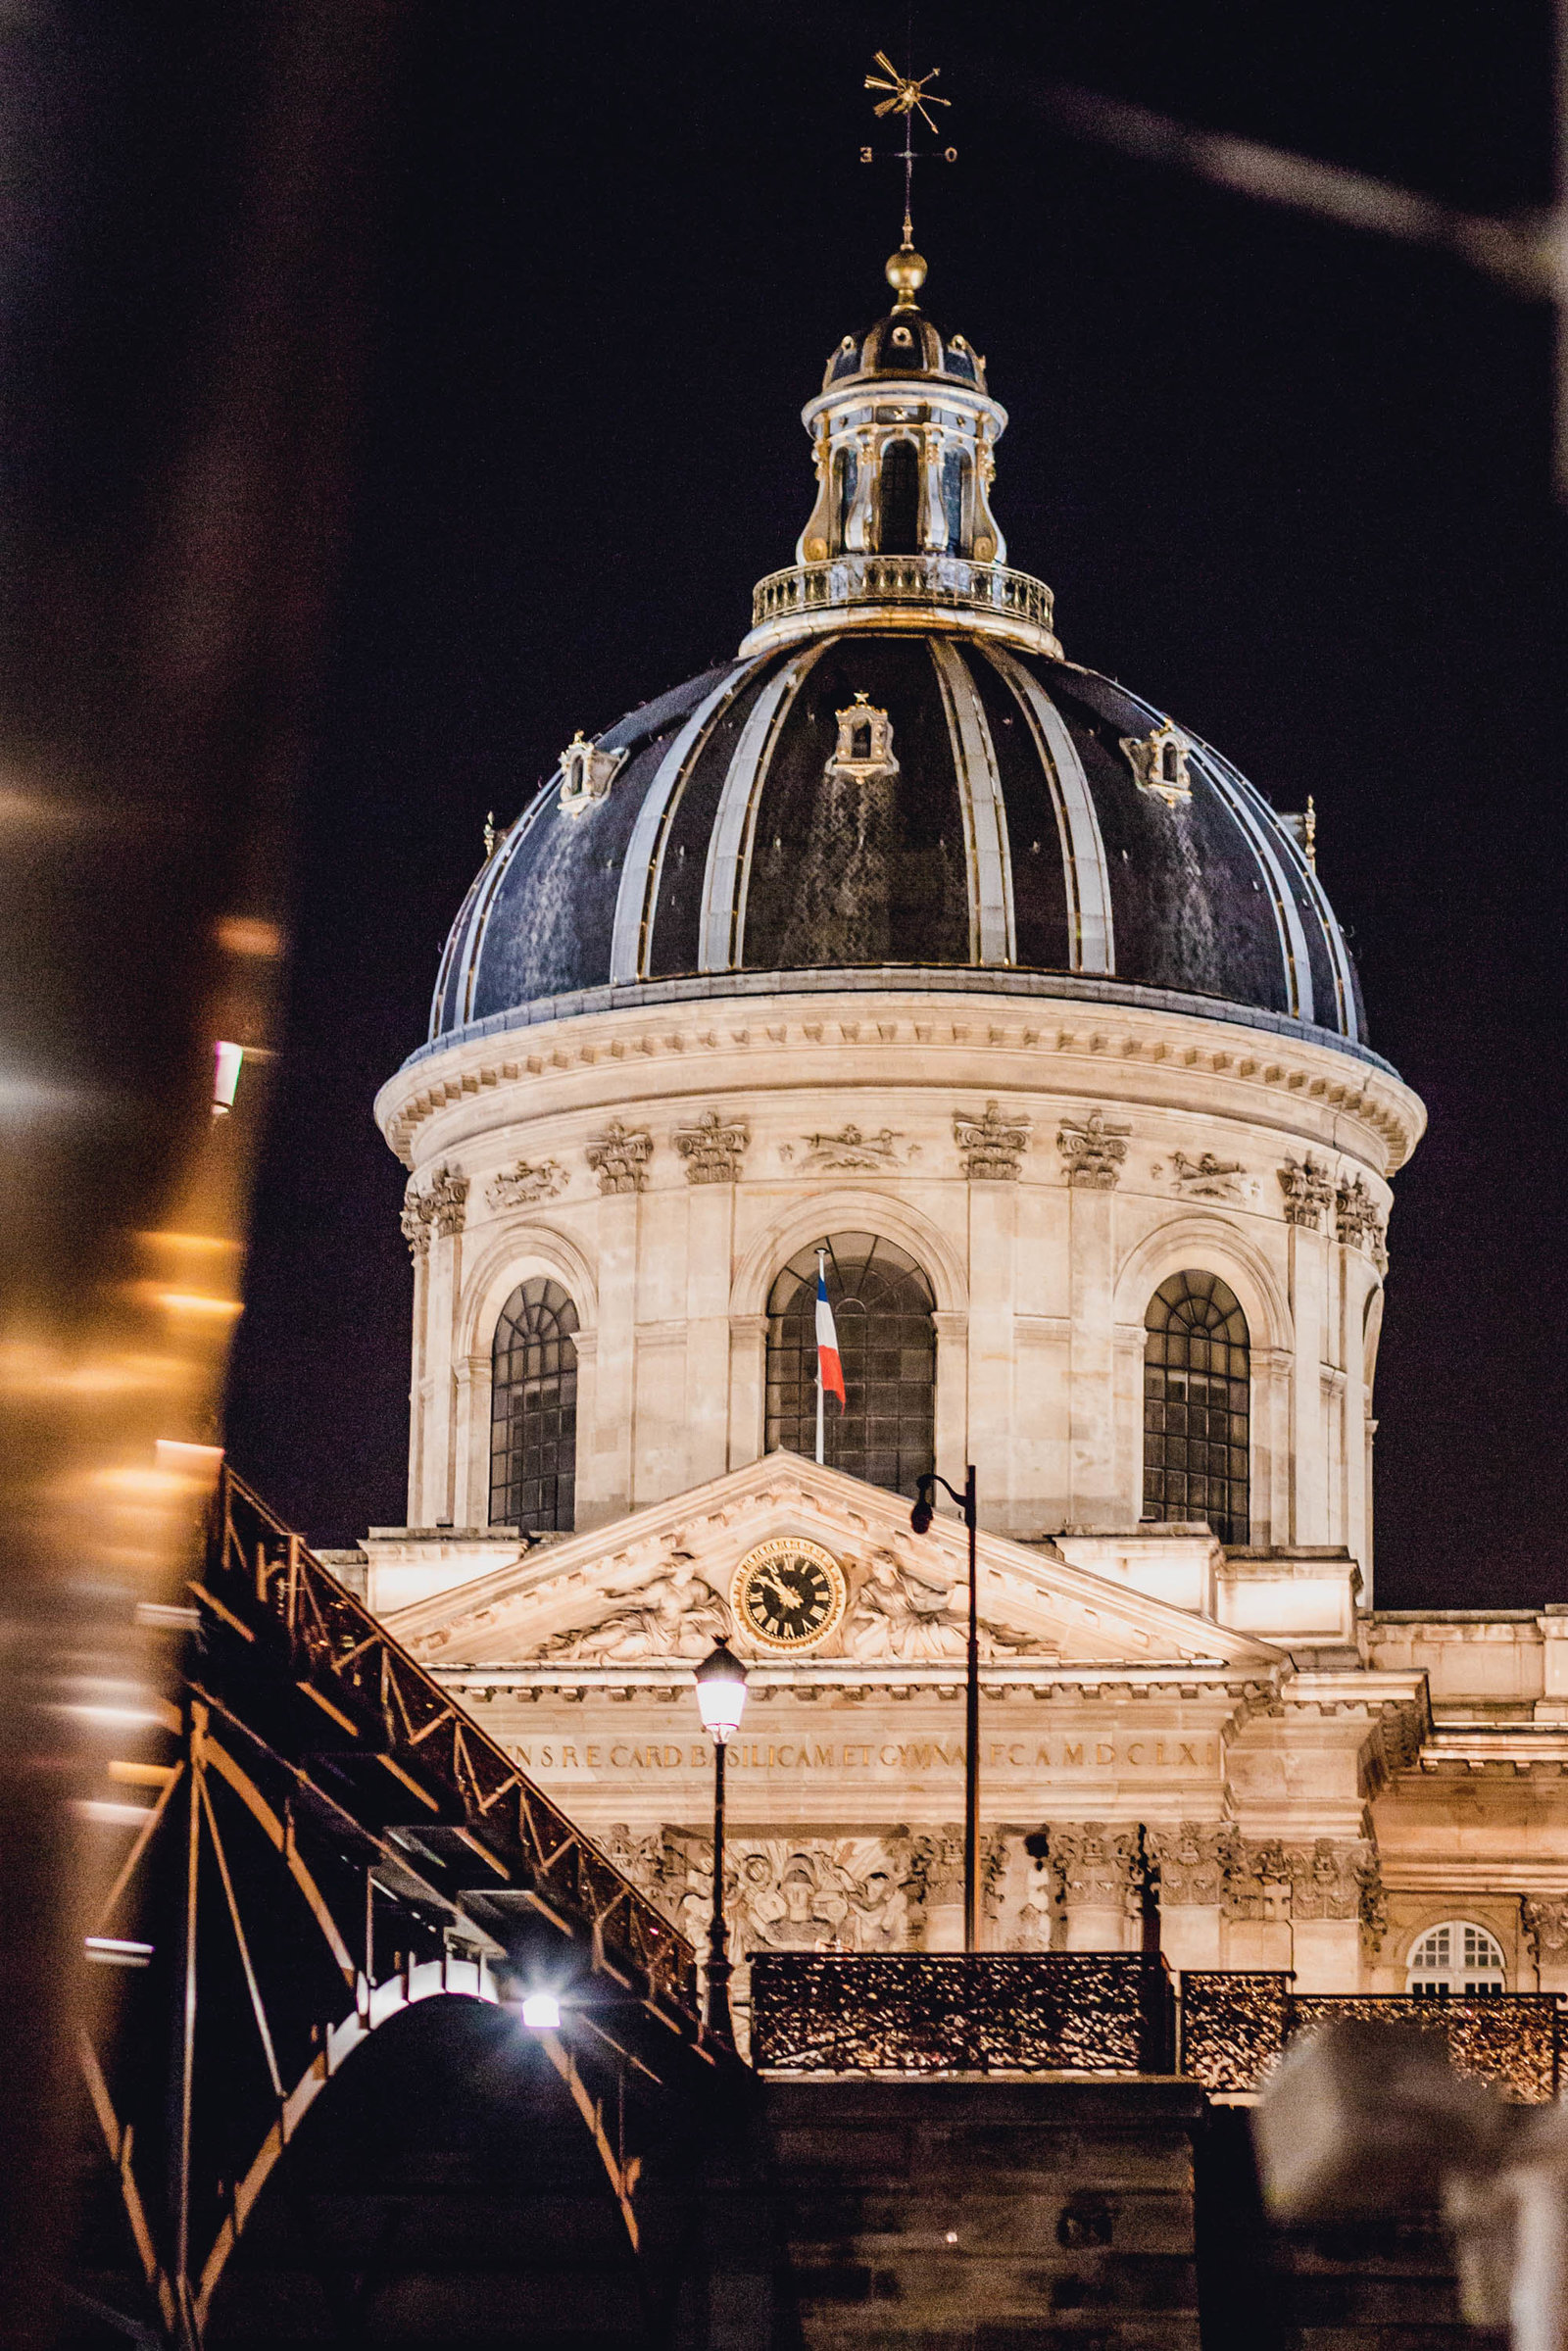 institut-night-paris-france-travel-destination-wedding-kate-timbers-photography-1838